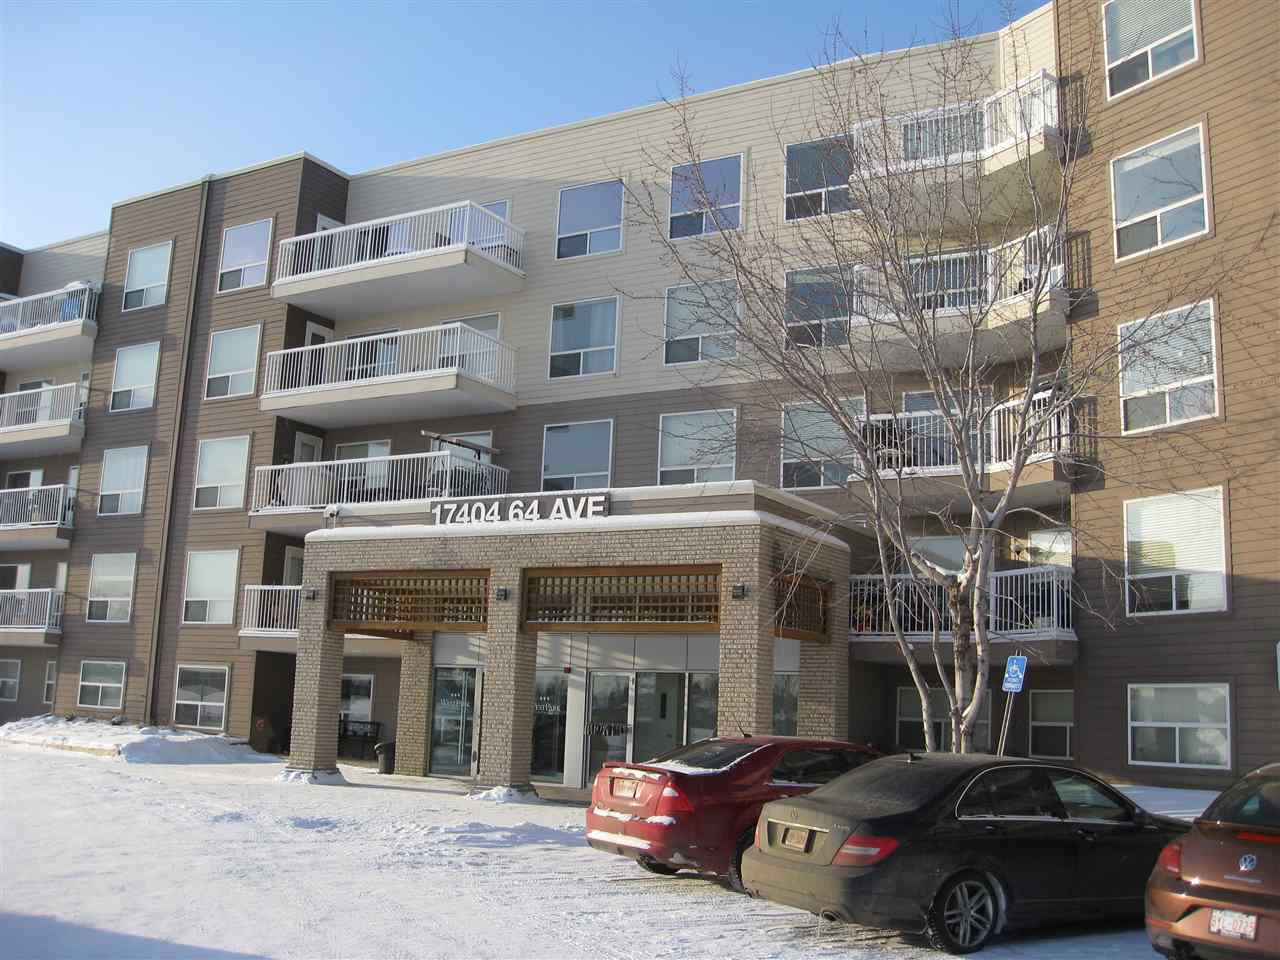 MLS® listing #E4143593 for sale located at 114 17404 64 Avenue